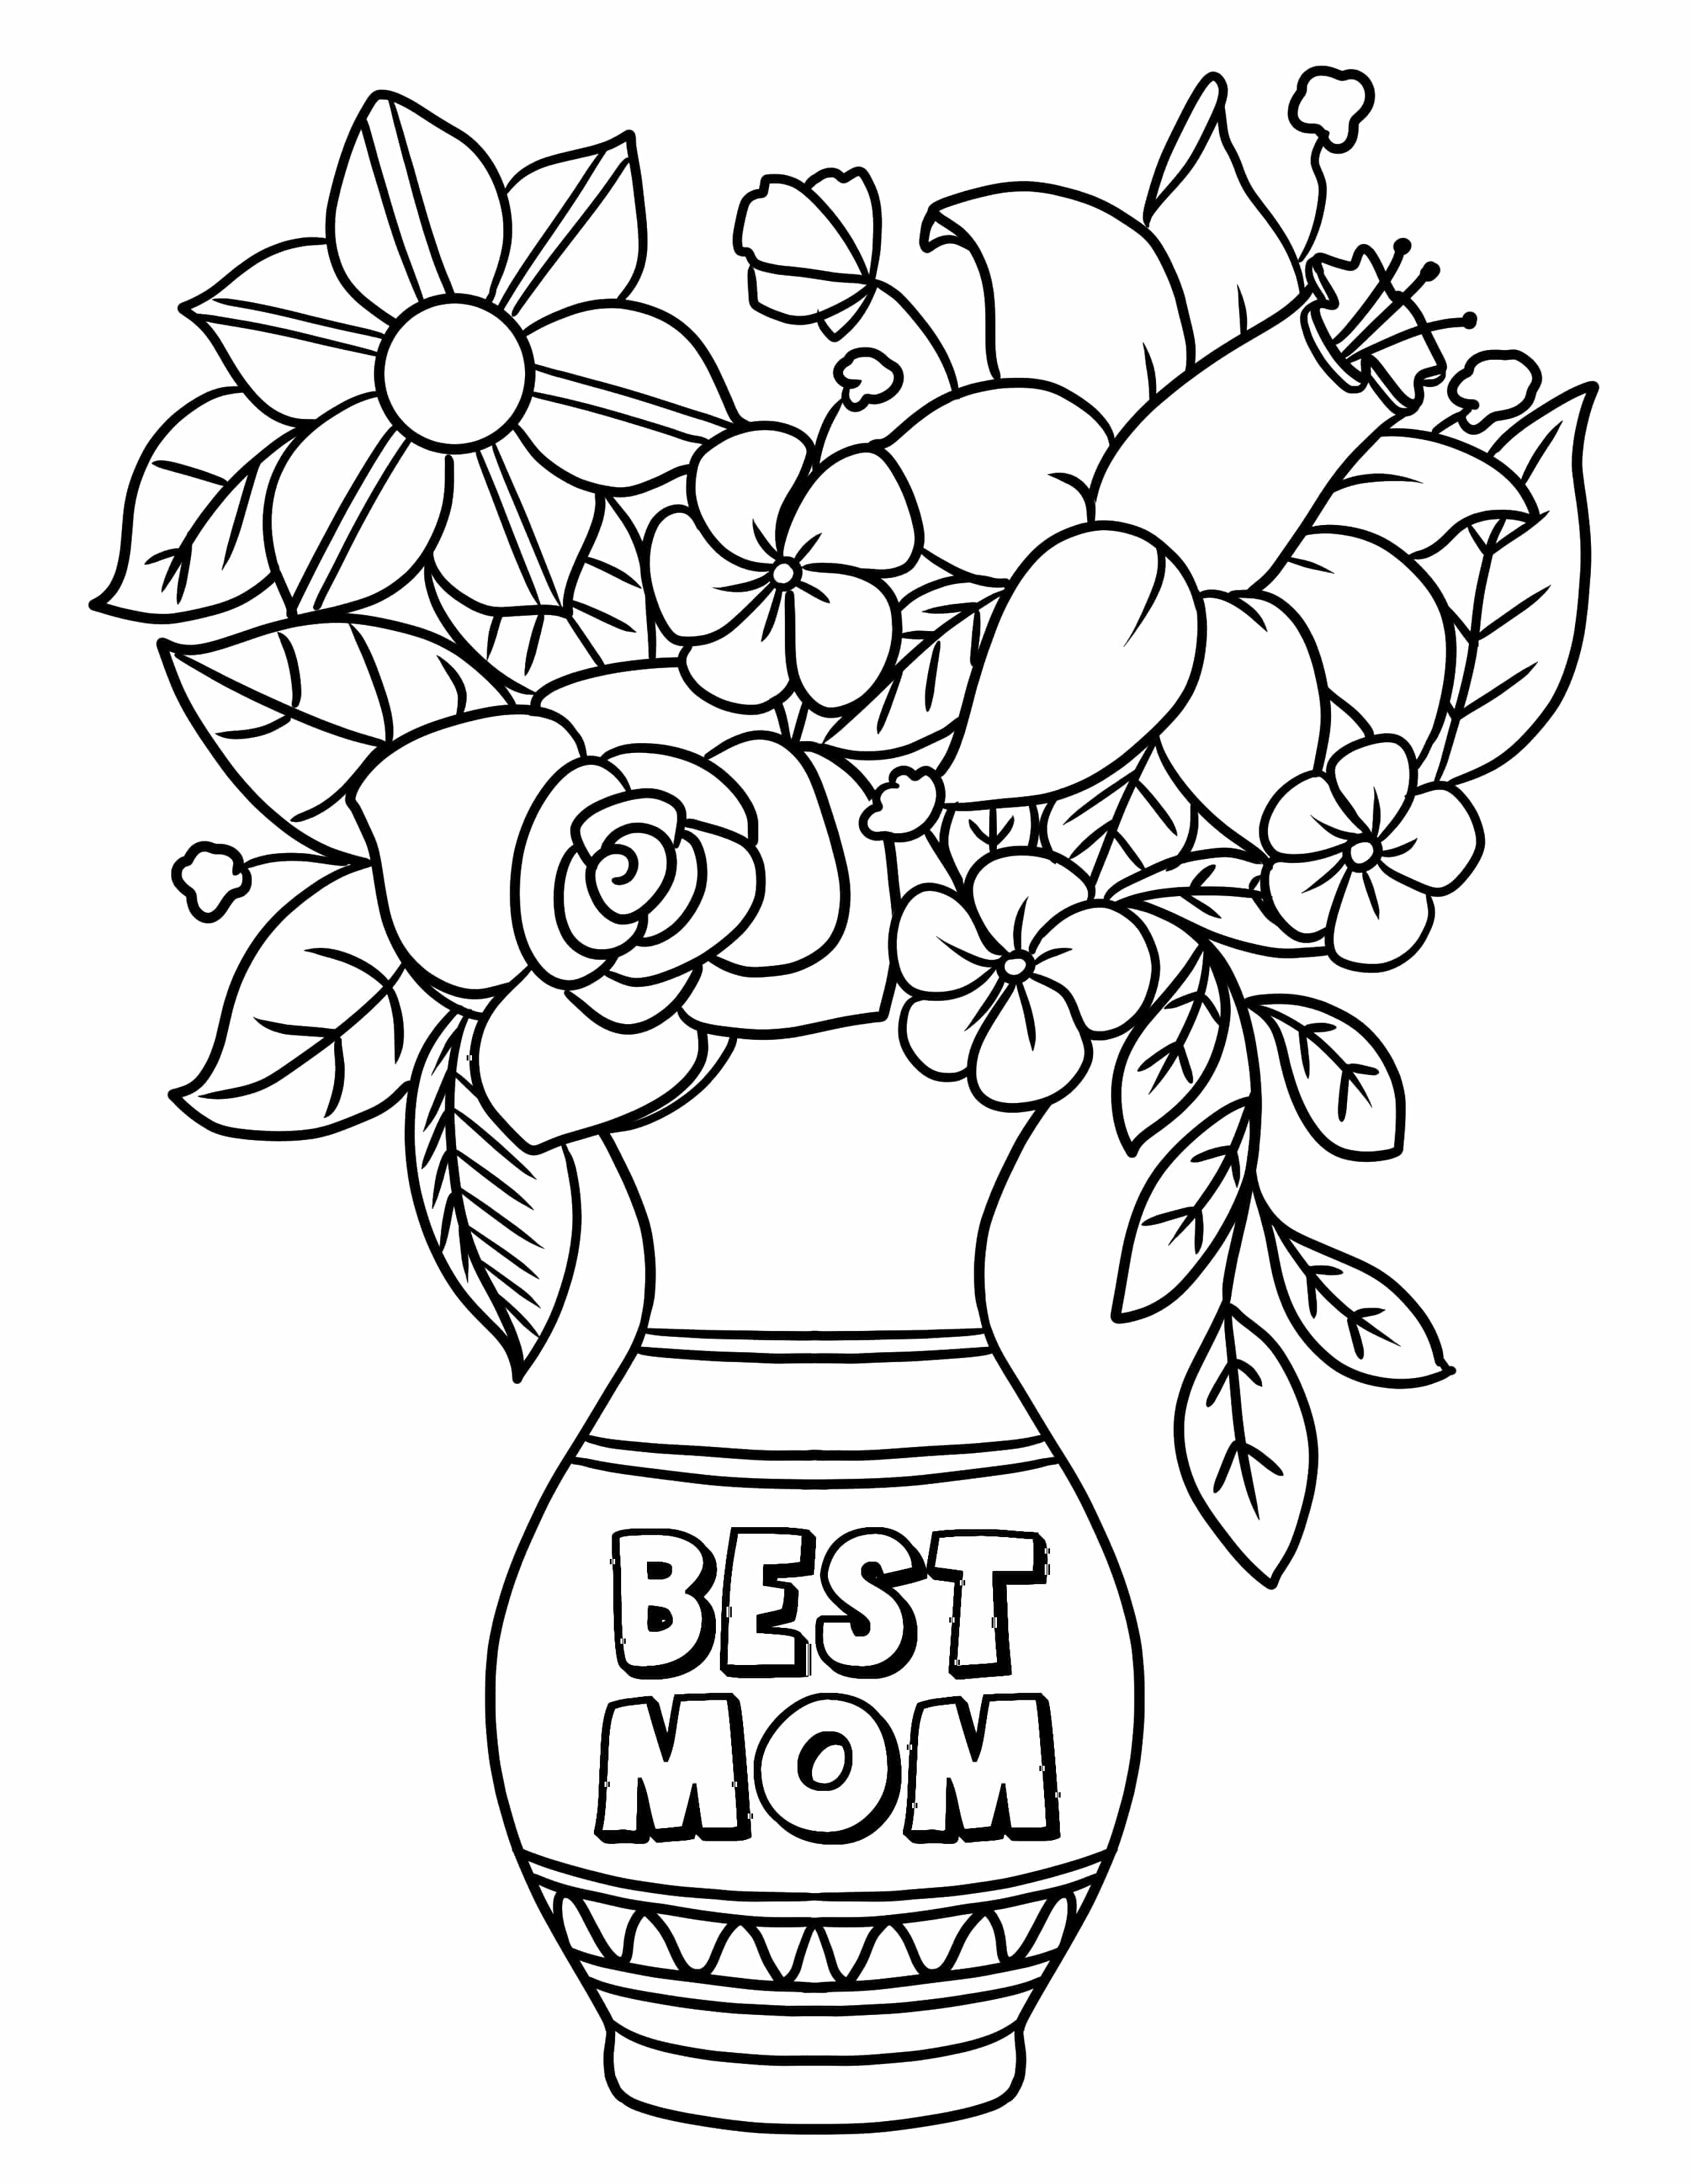 The first of the free printable Mother's Day coloring pages allows you to give mom flowers that'll never wilt!